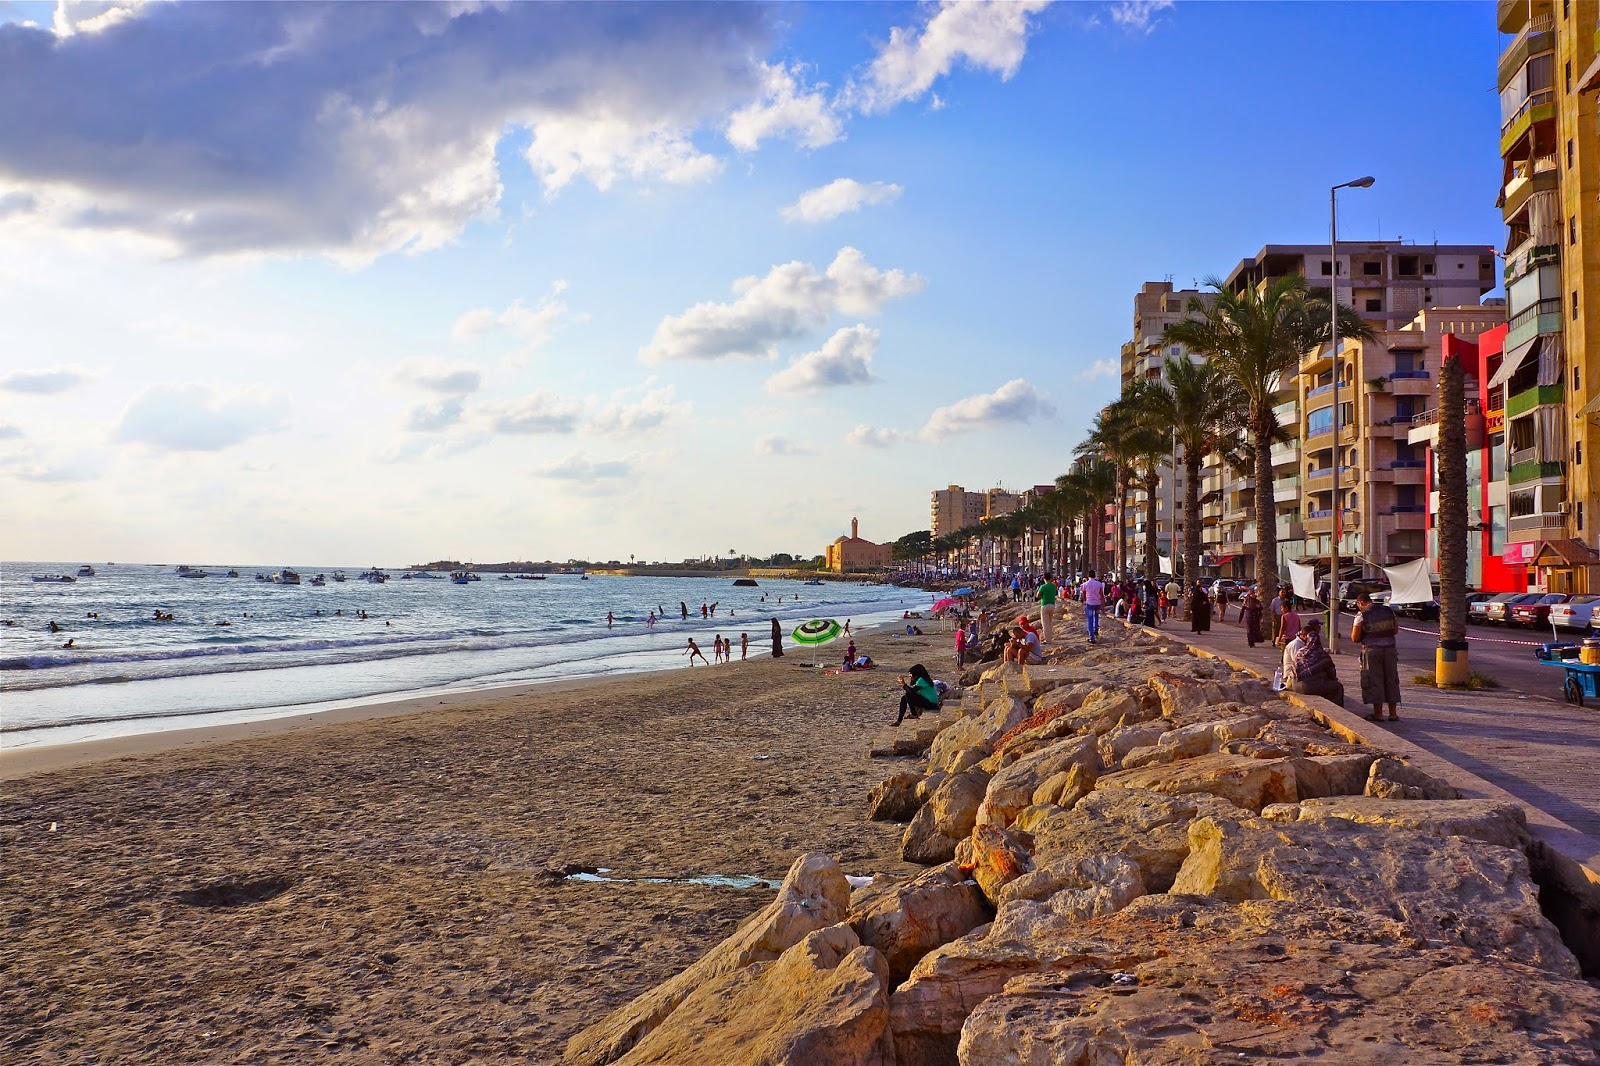 Picture of the beach and Corniche in Tyre, South Lebanon.